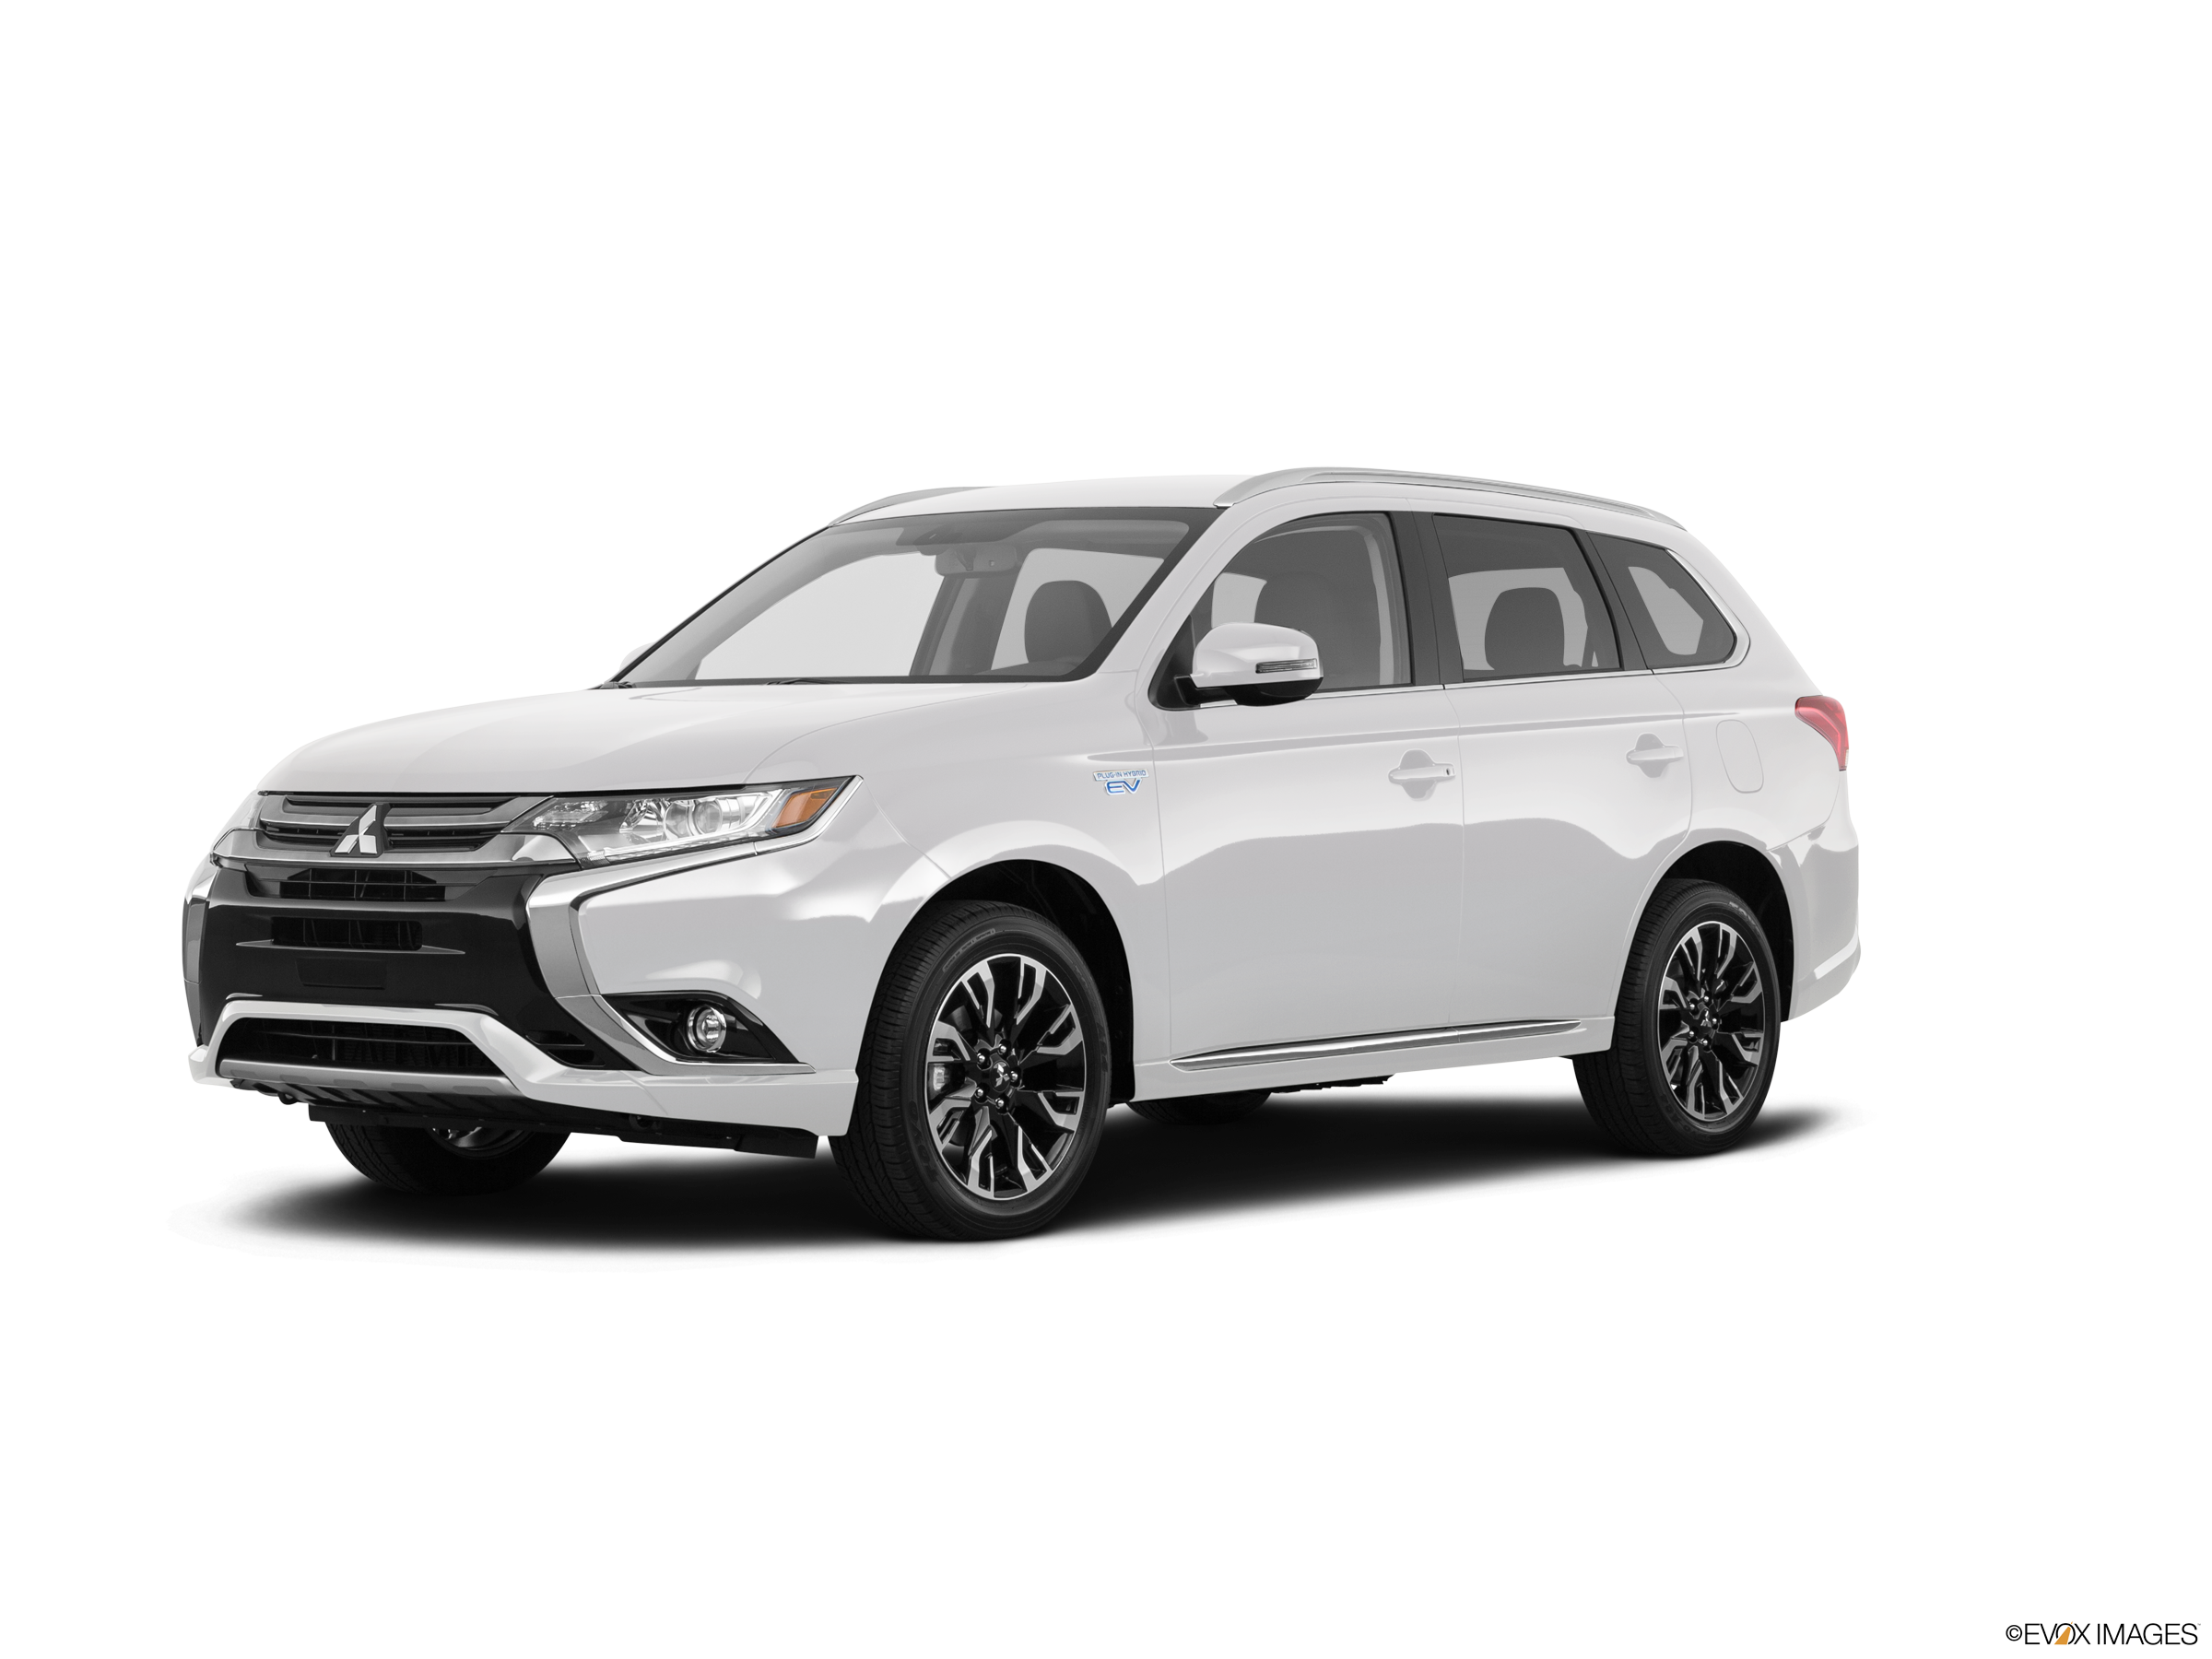 Best Safety Rated Electric Cars of 2018 - 2018 Mitsubishi Outlander PHEV